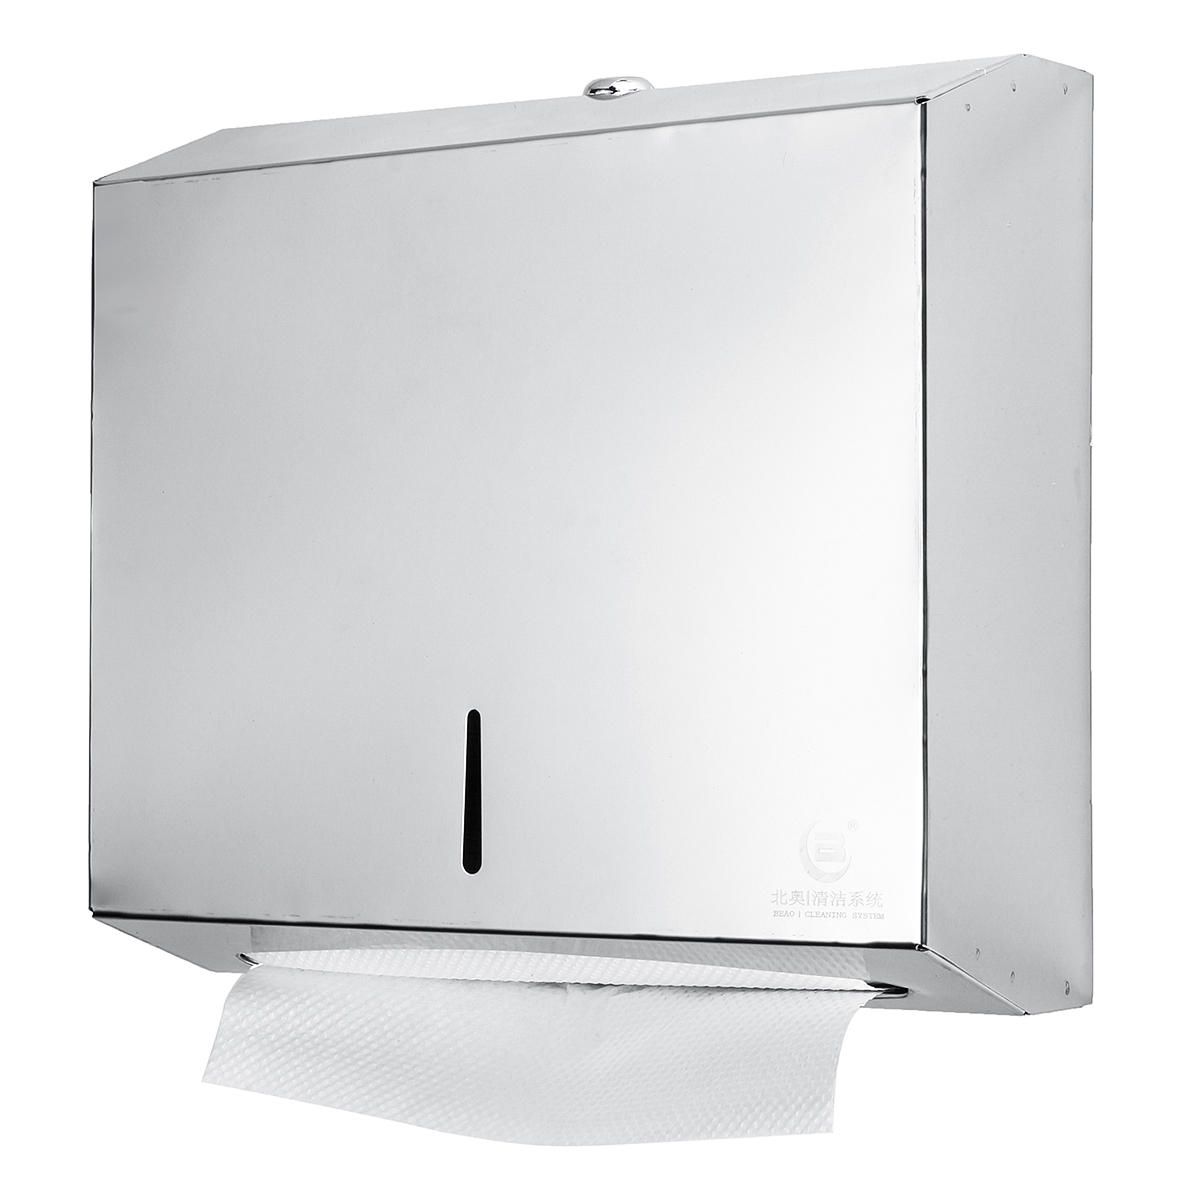 Toilet tissue hand paper towel dispenser wall mount holder - Bathroom towel and toilet paper holders ...